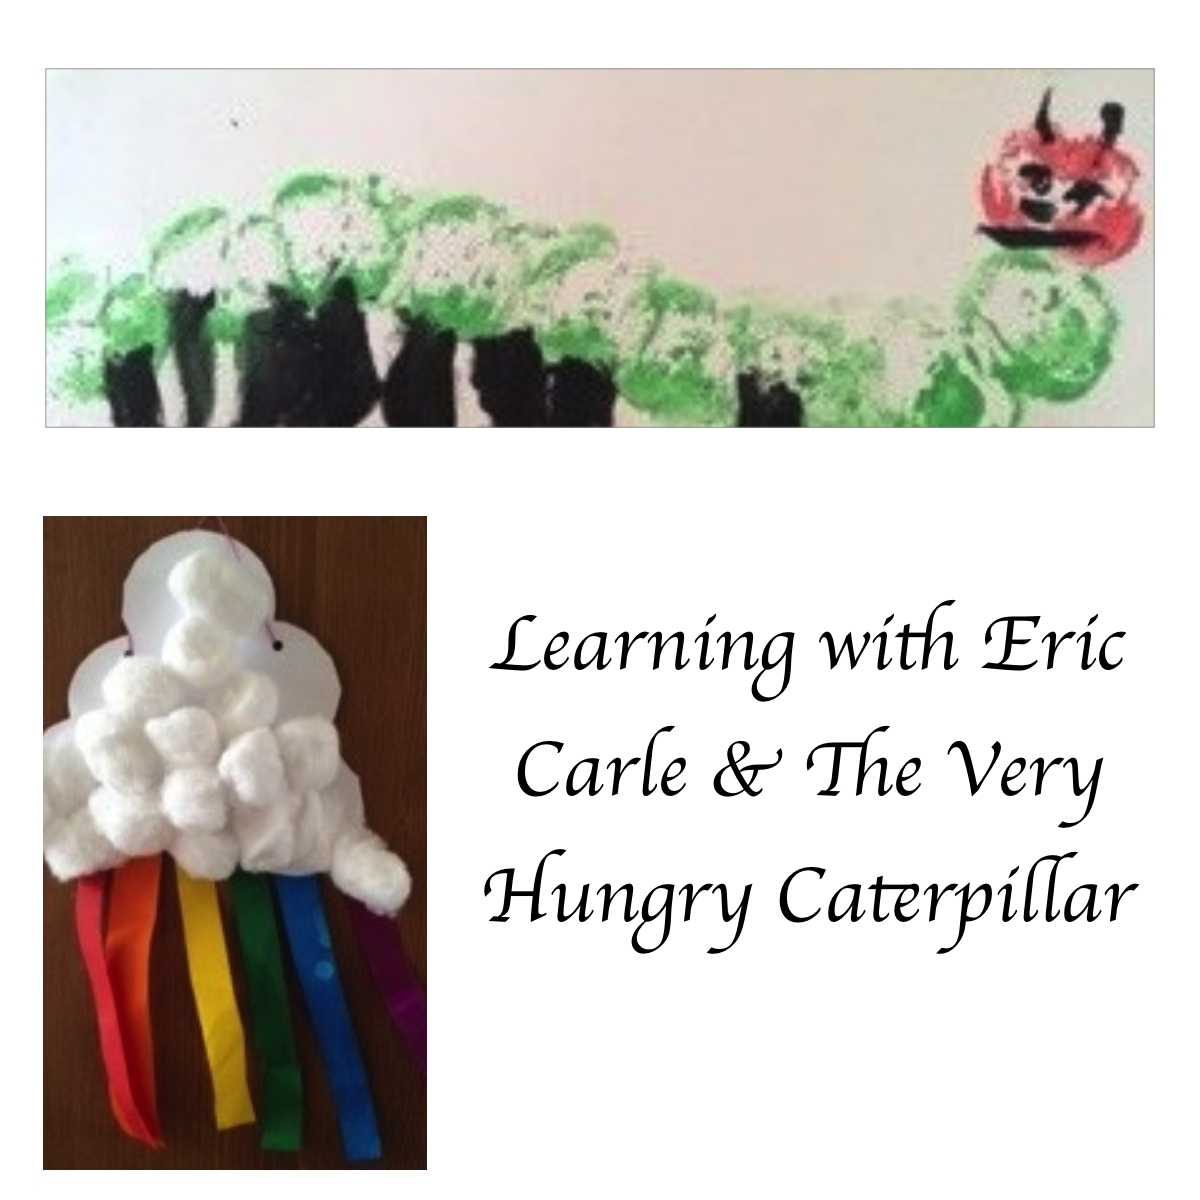 Learning with Eric Carle & The Very Hungry Caterpillar